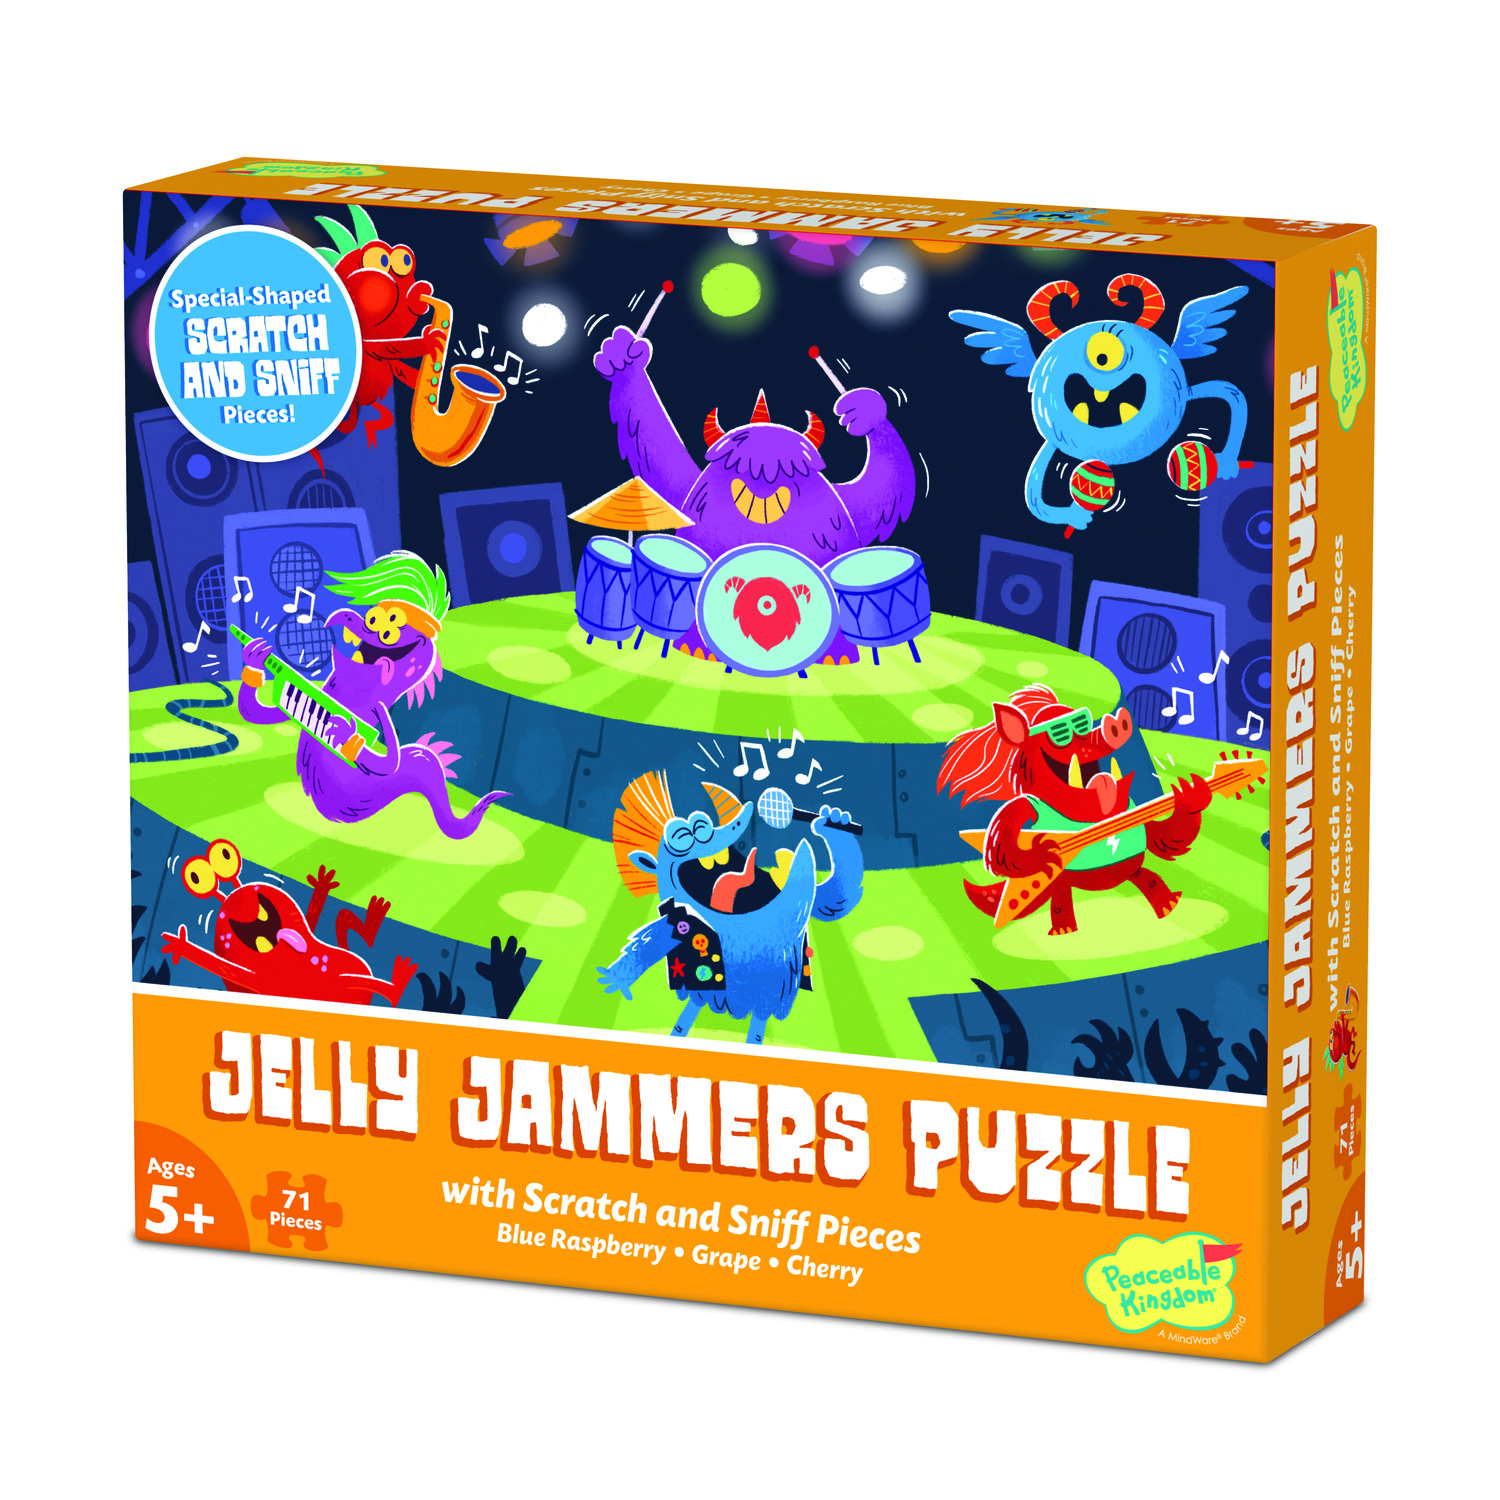 Scratch and Sniff 71pc Jigsaw Puzzle: Jelly Jammers by Peaceable Kingdom 5+